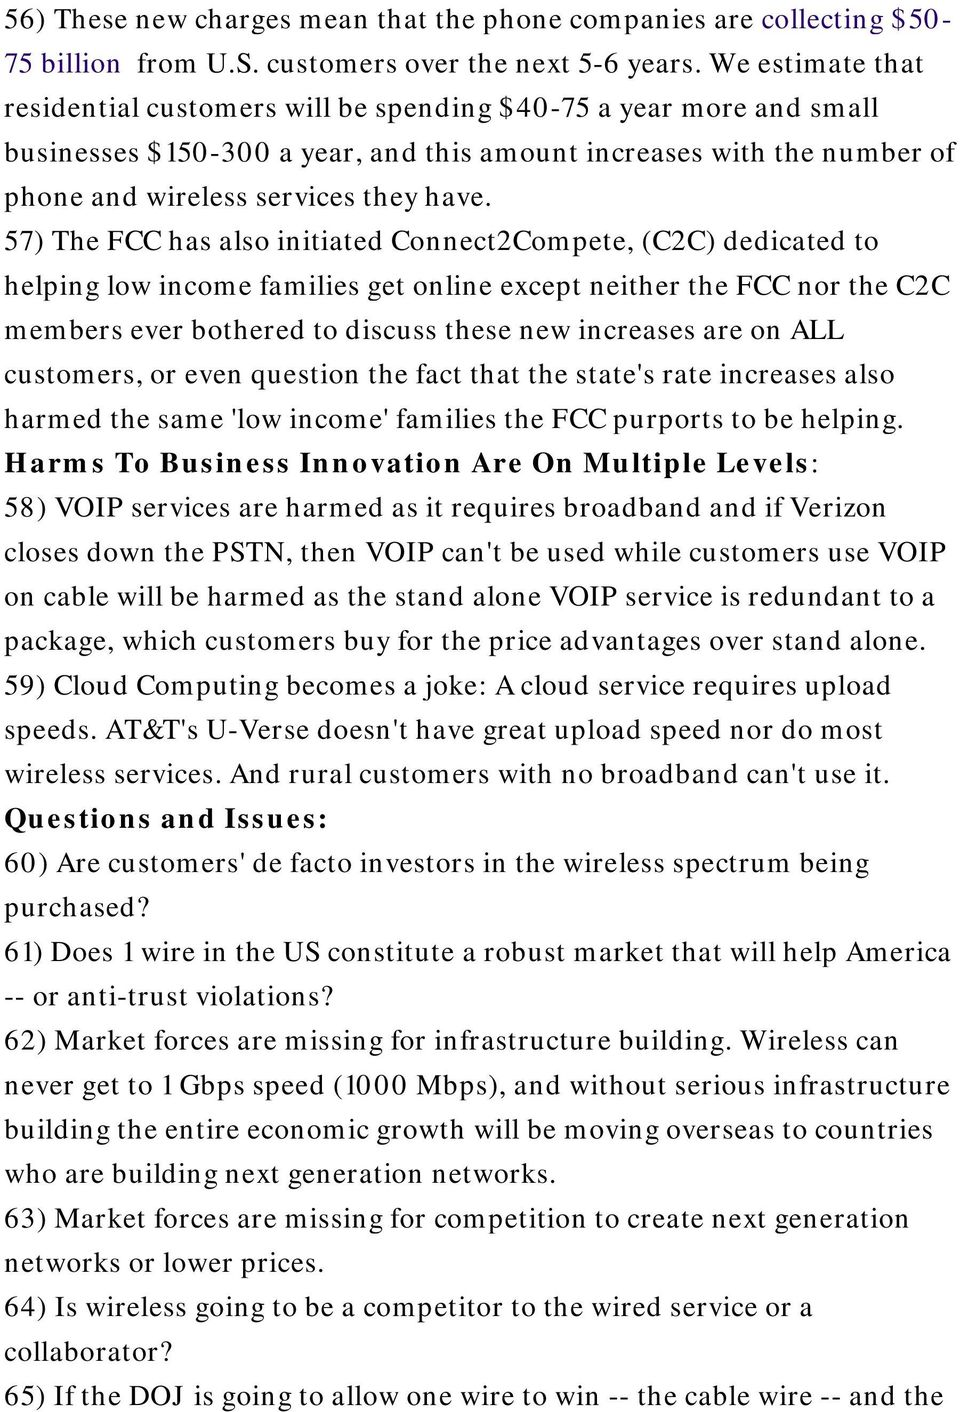 57) The FCC has also initiated Connect2Compete, (C2C) dedicated to helping low income families get online except neither the FCC nor the C2C members ever bothered to discuss these new increases are